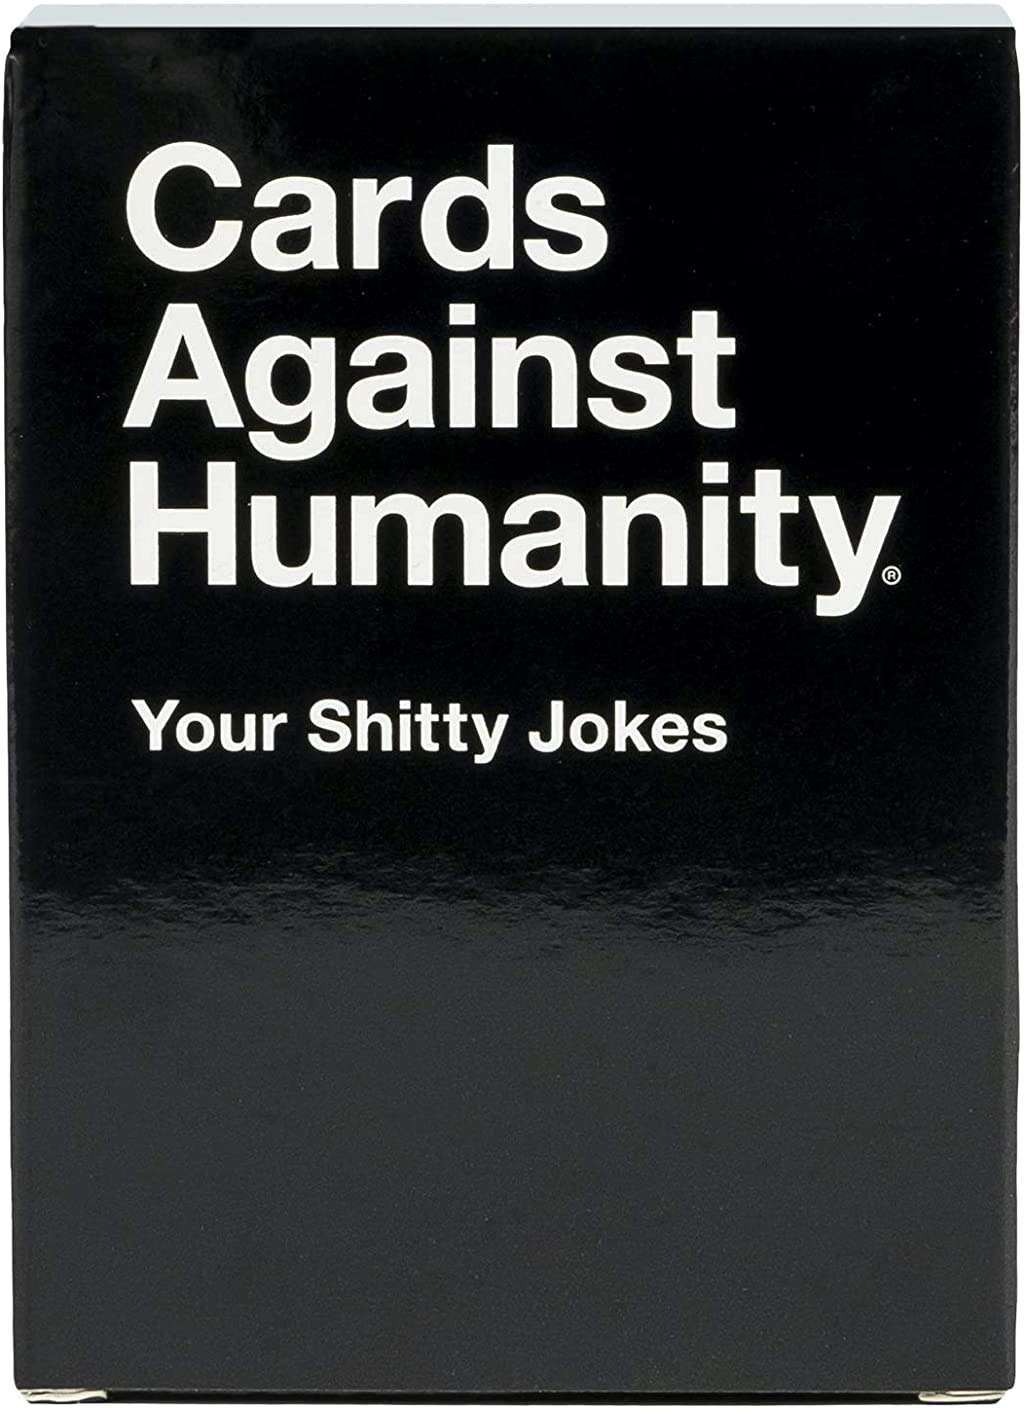 Cards Against Humanity: Your Shitty Jokes